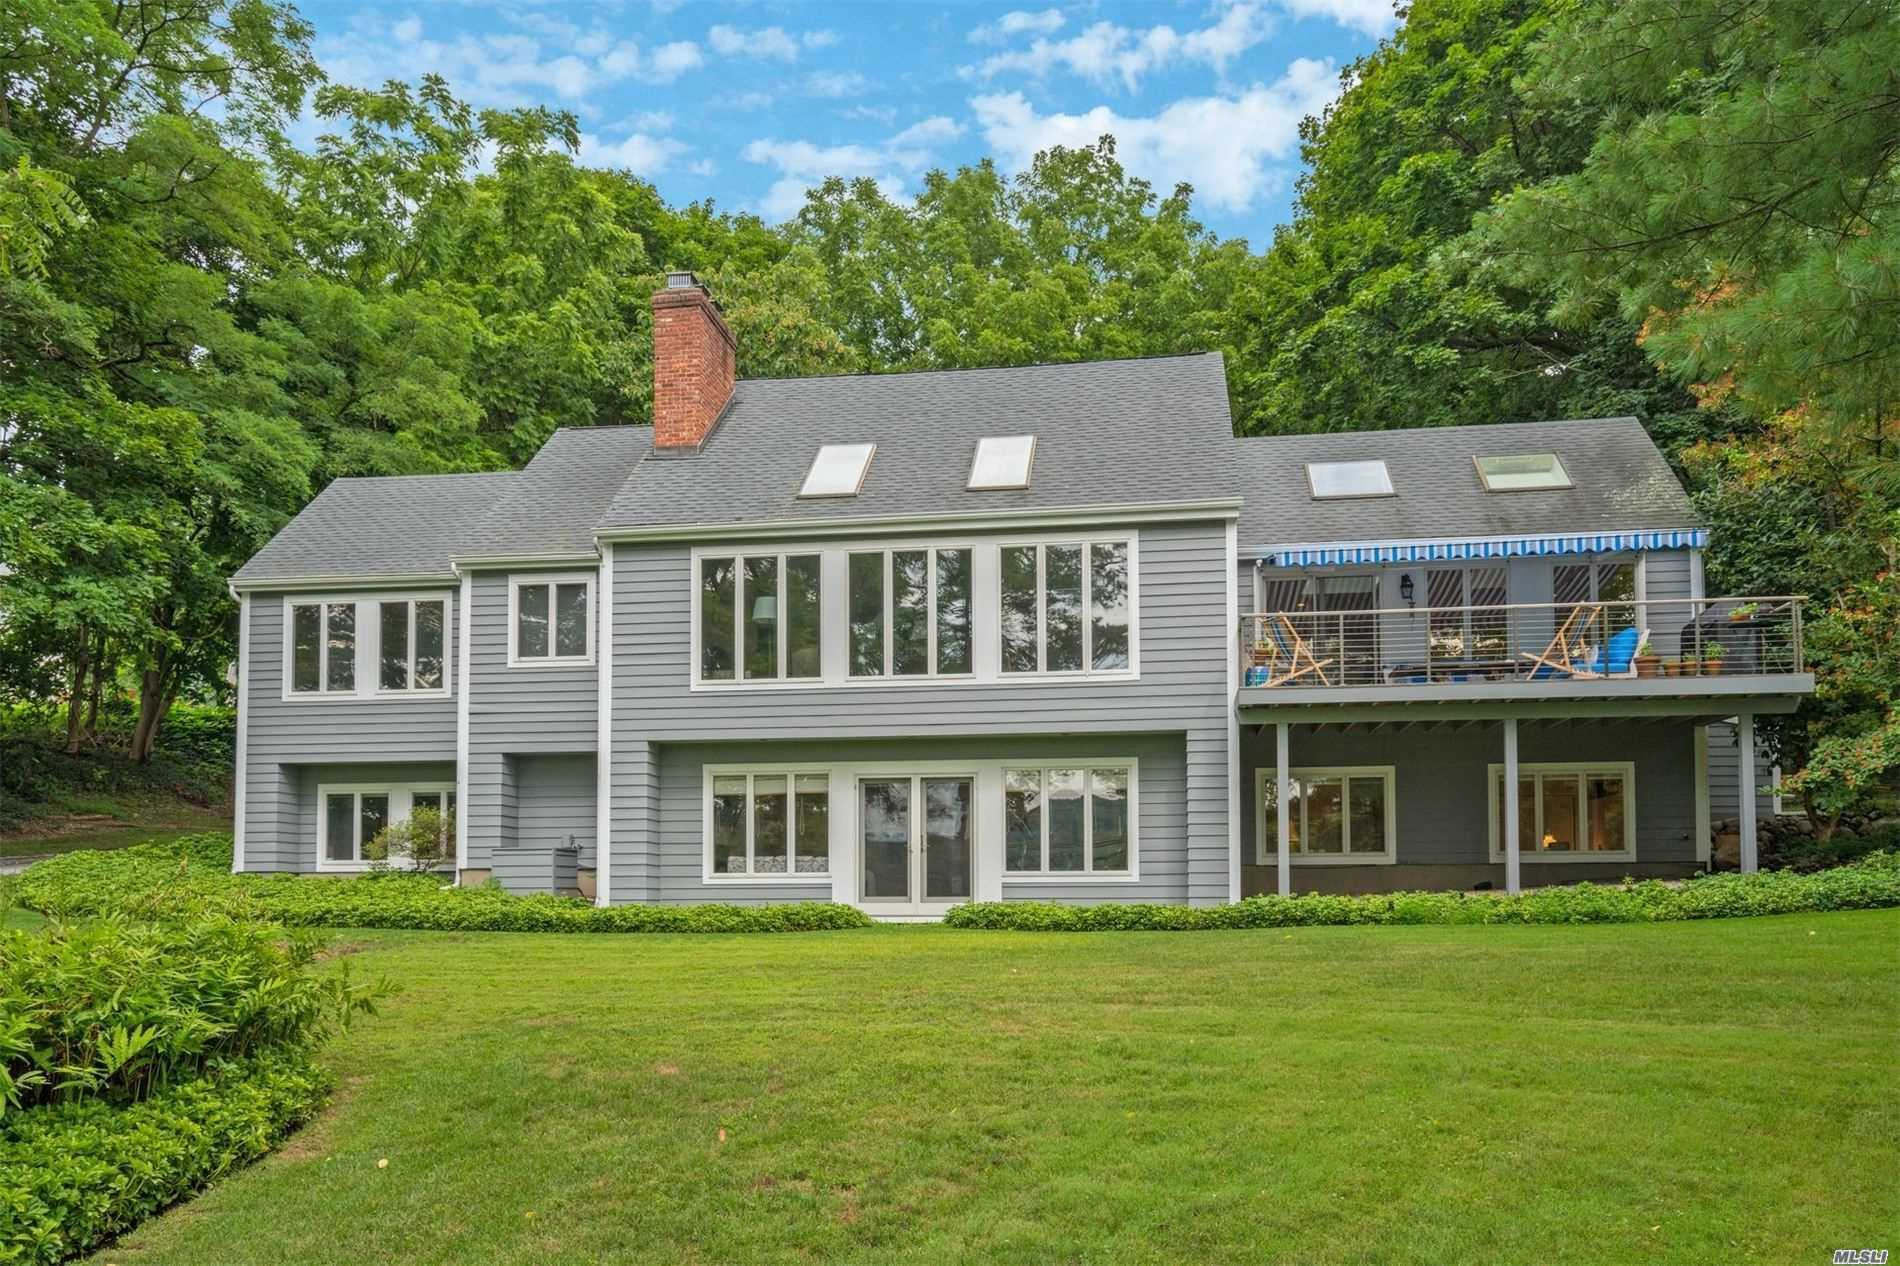 199 Harbor Road, Cold Spring Hrbr, NY 11724 - MLS#3239525 - Lucky to Live Here Realty - Lucky to Live Here Realty